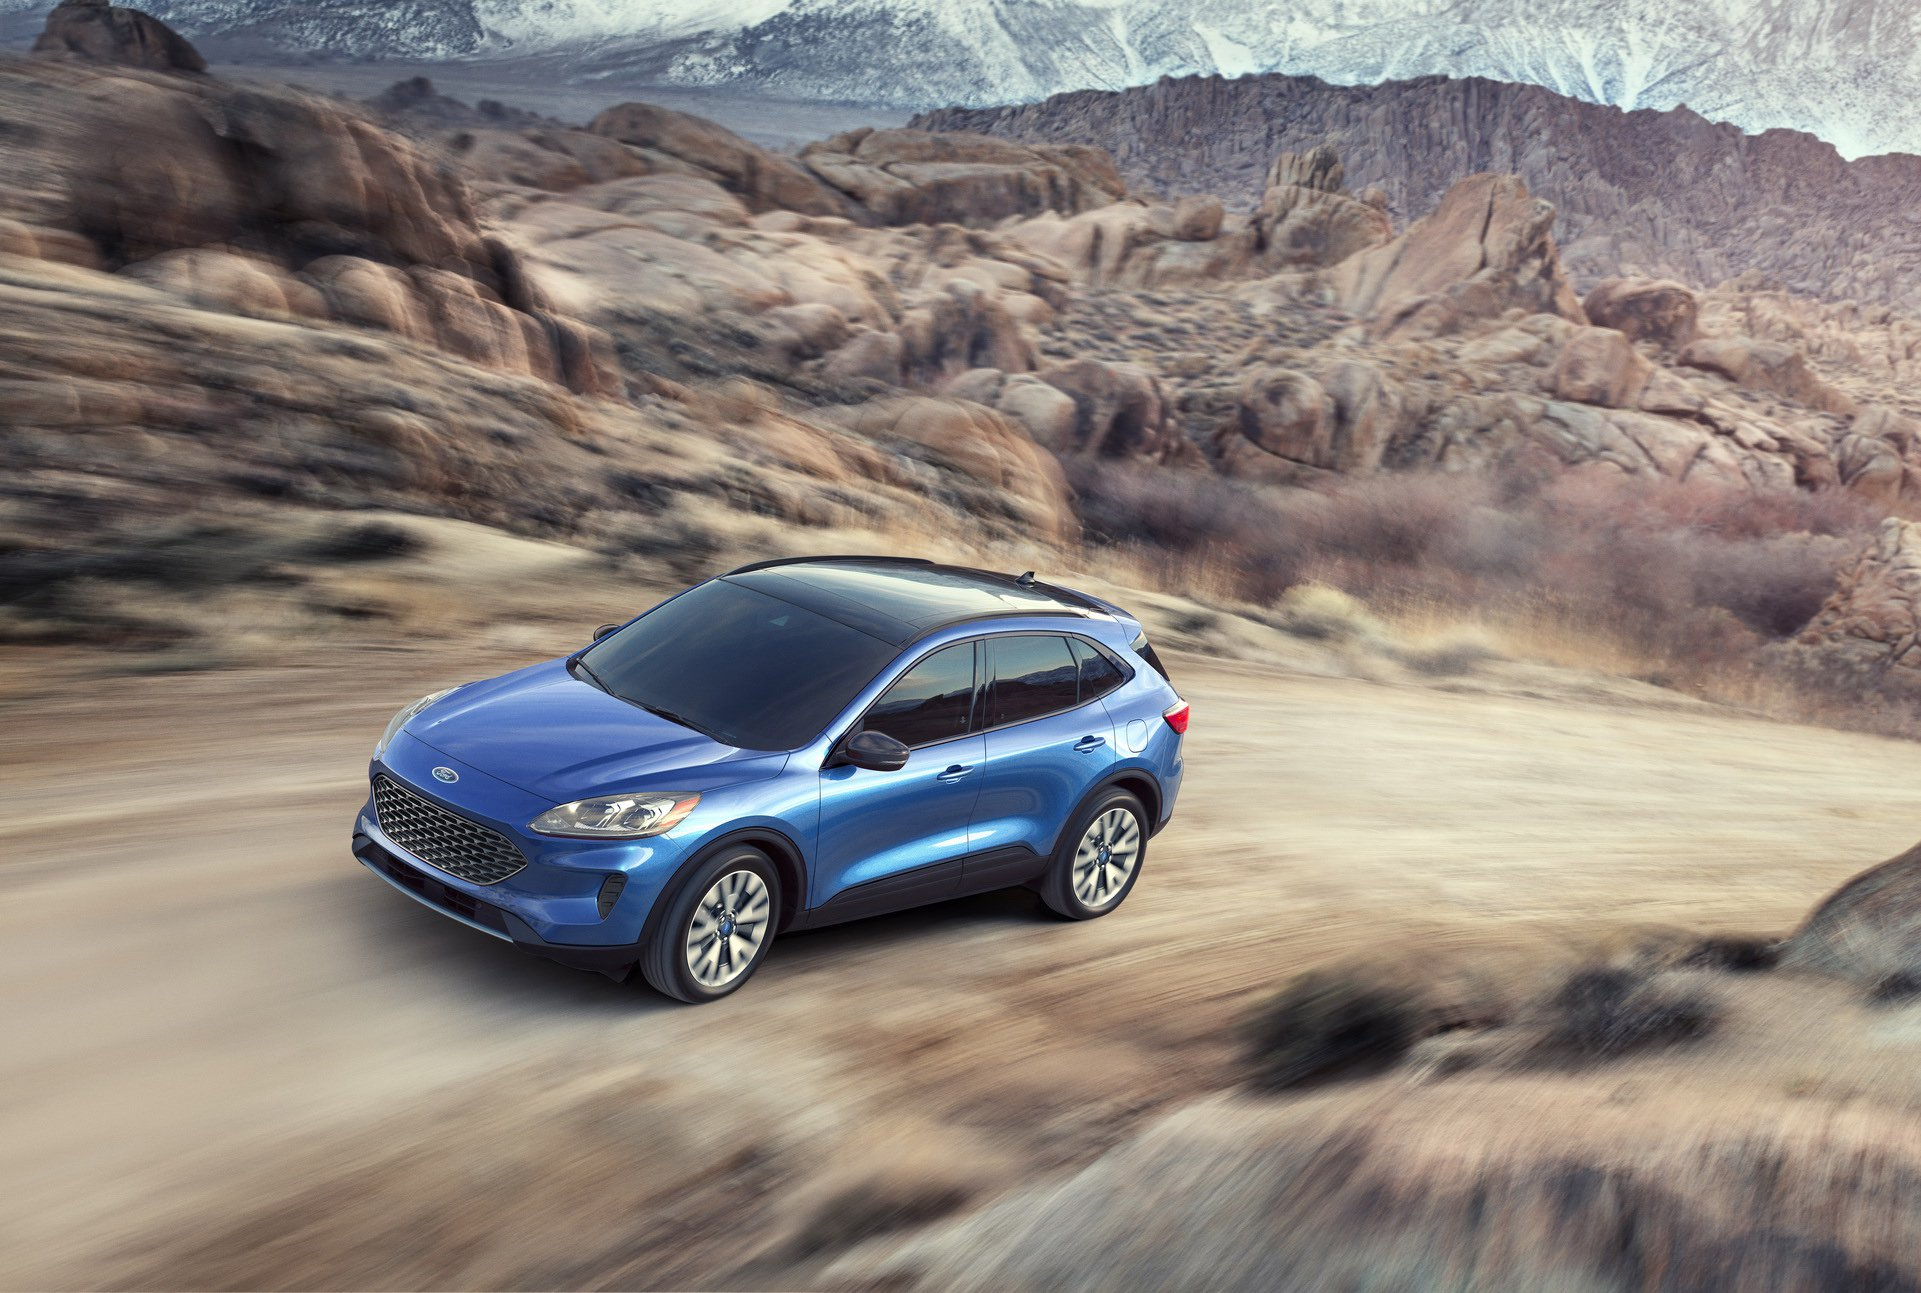 2020 Ford Escape Unveiled With Car-Like Look, PHEV and ... - photo#21